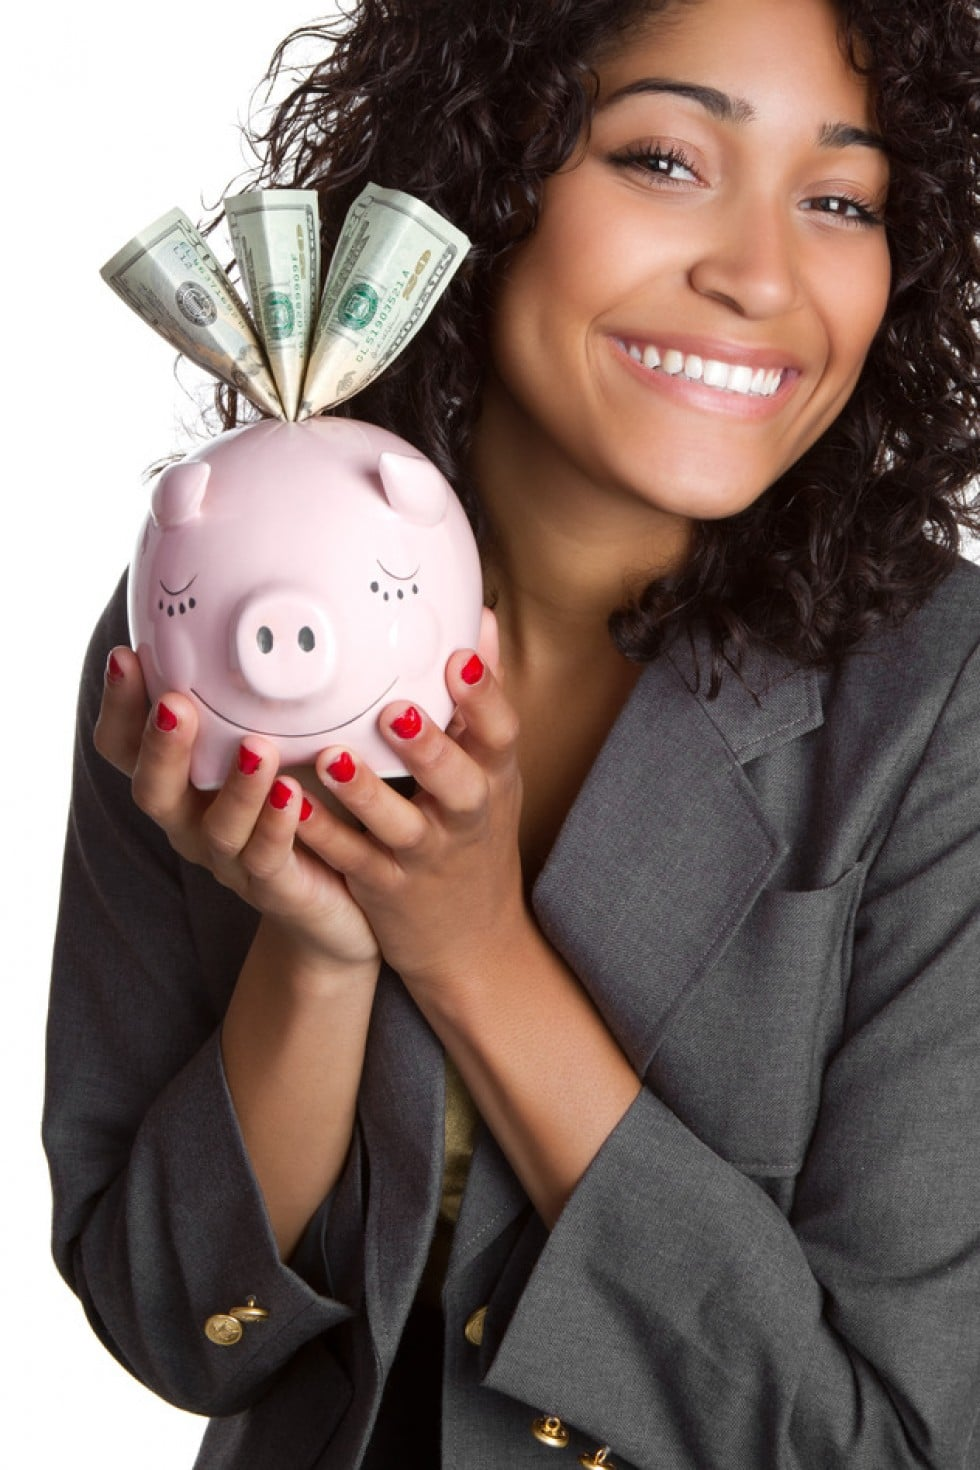 c0637c24626adddcb4bc313d73d3e5f6_photodune-1086324-piggy-bank-woman-s-980-c.jpg